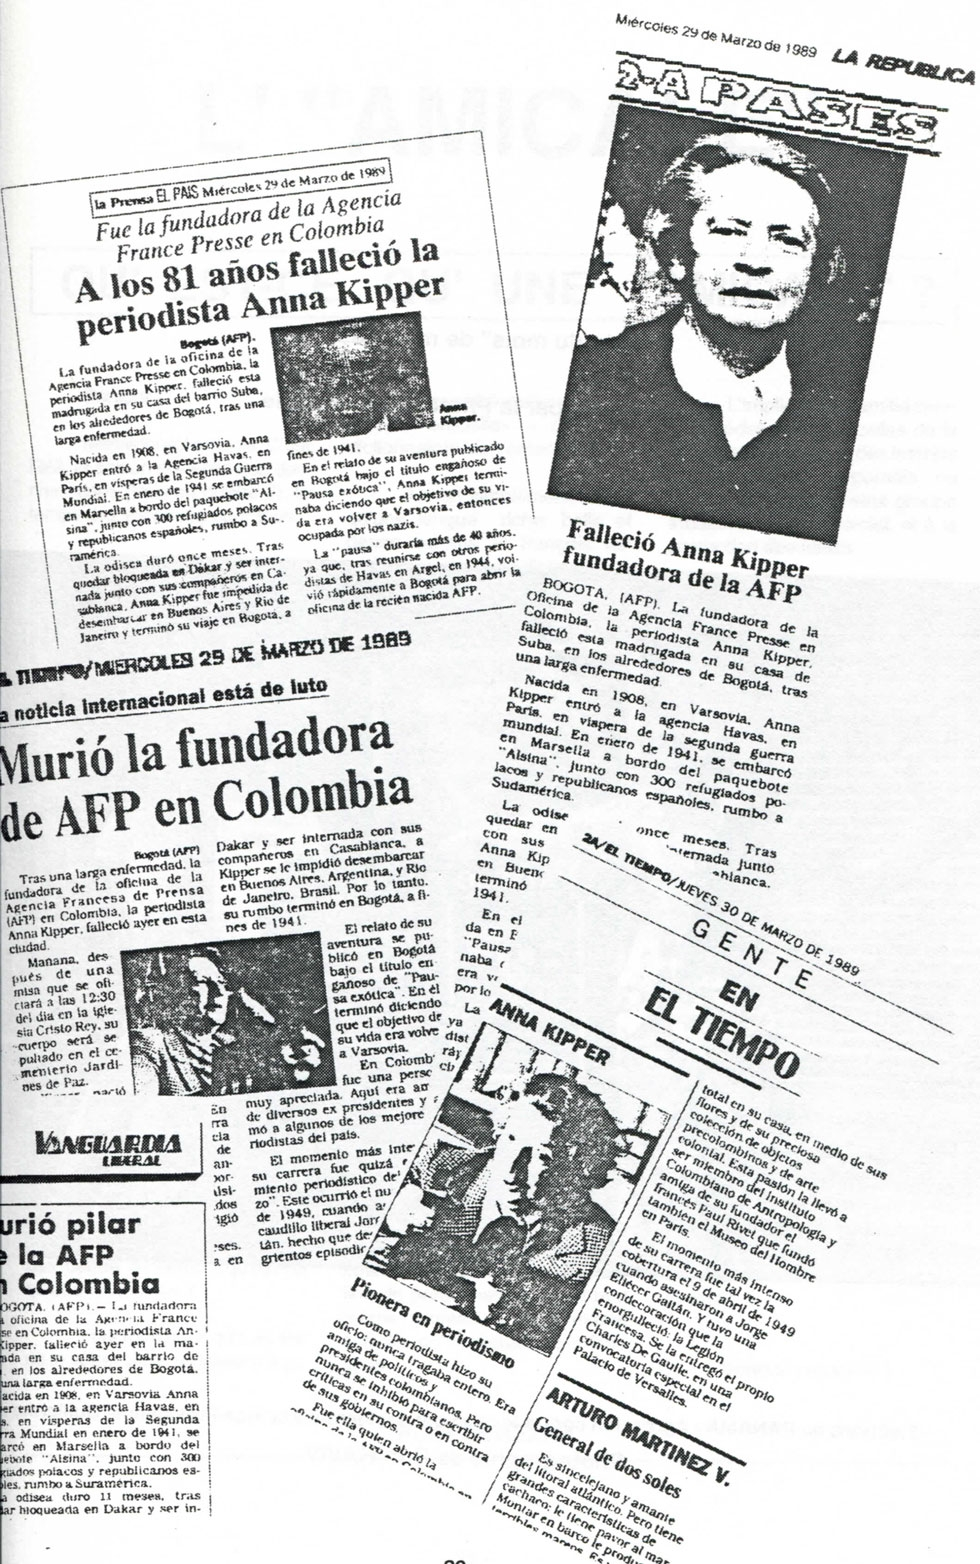 Colombian newspapers report Anna Kipper's death in March 1989